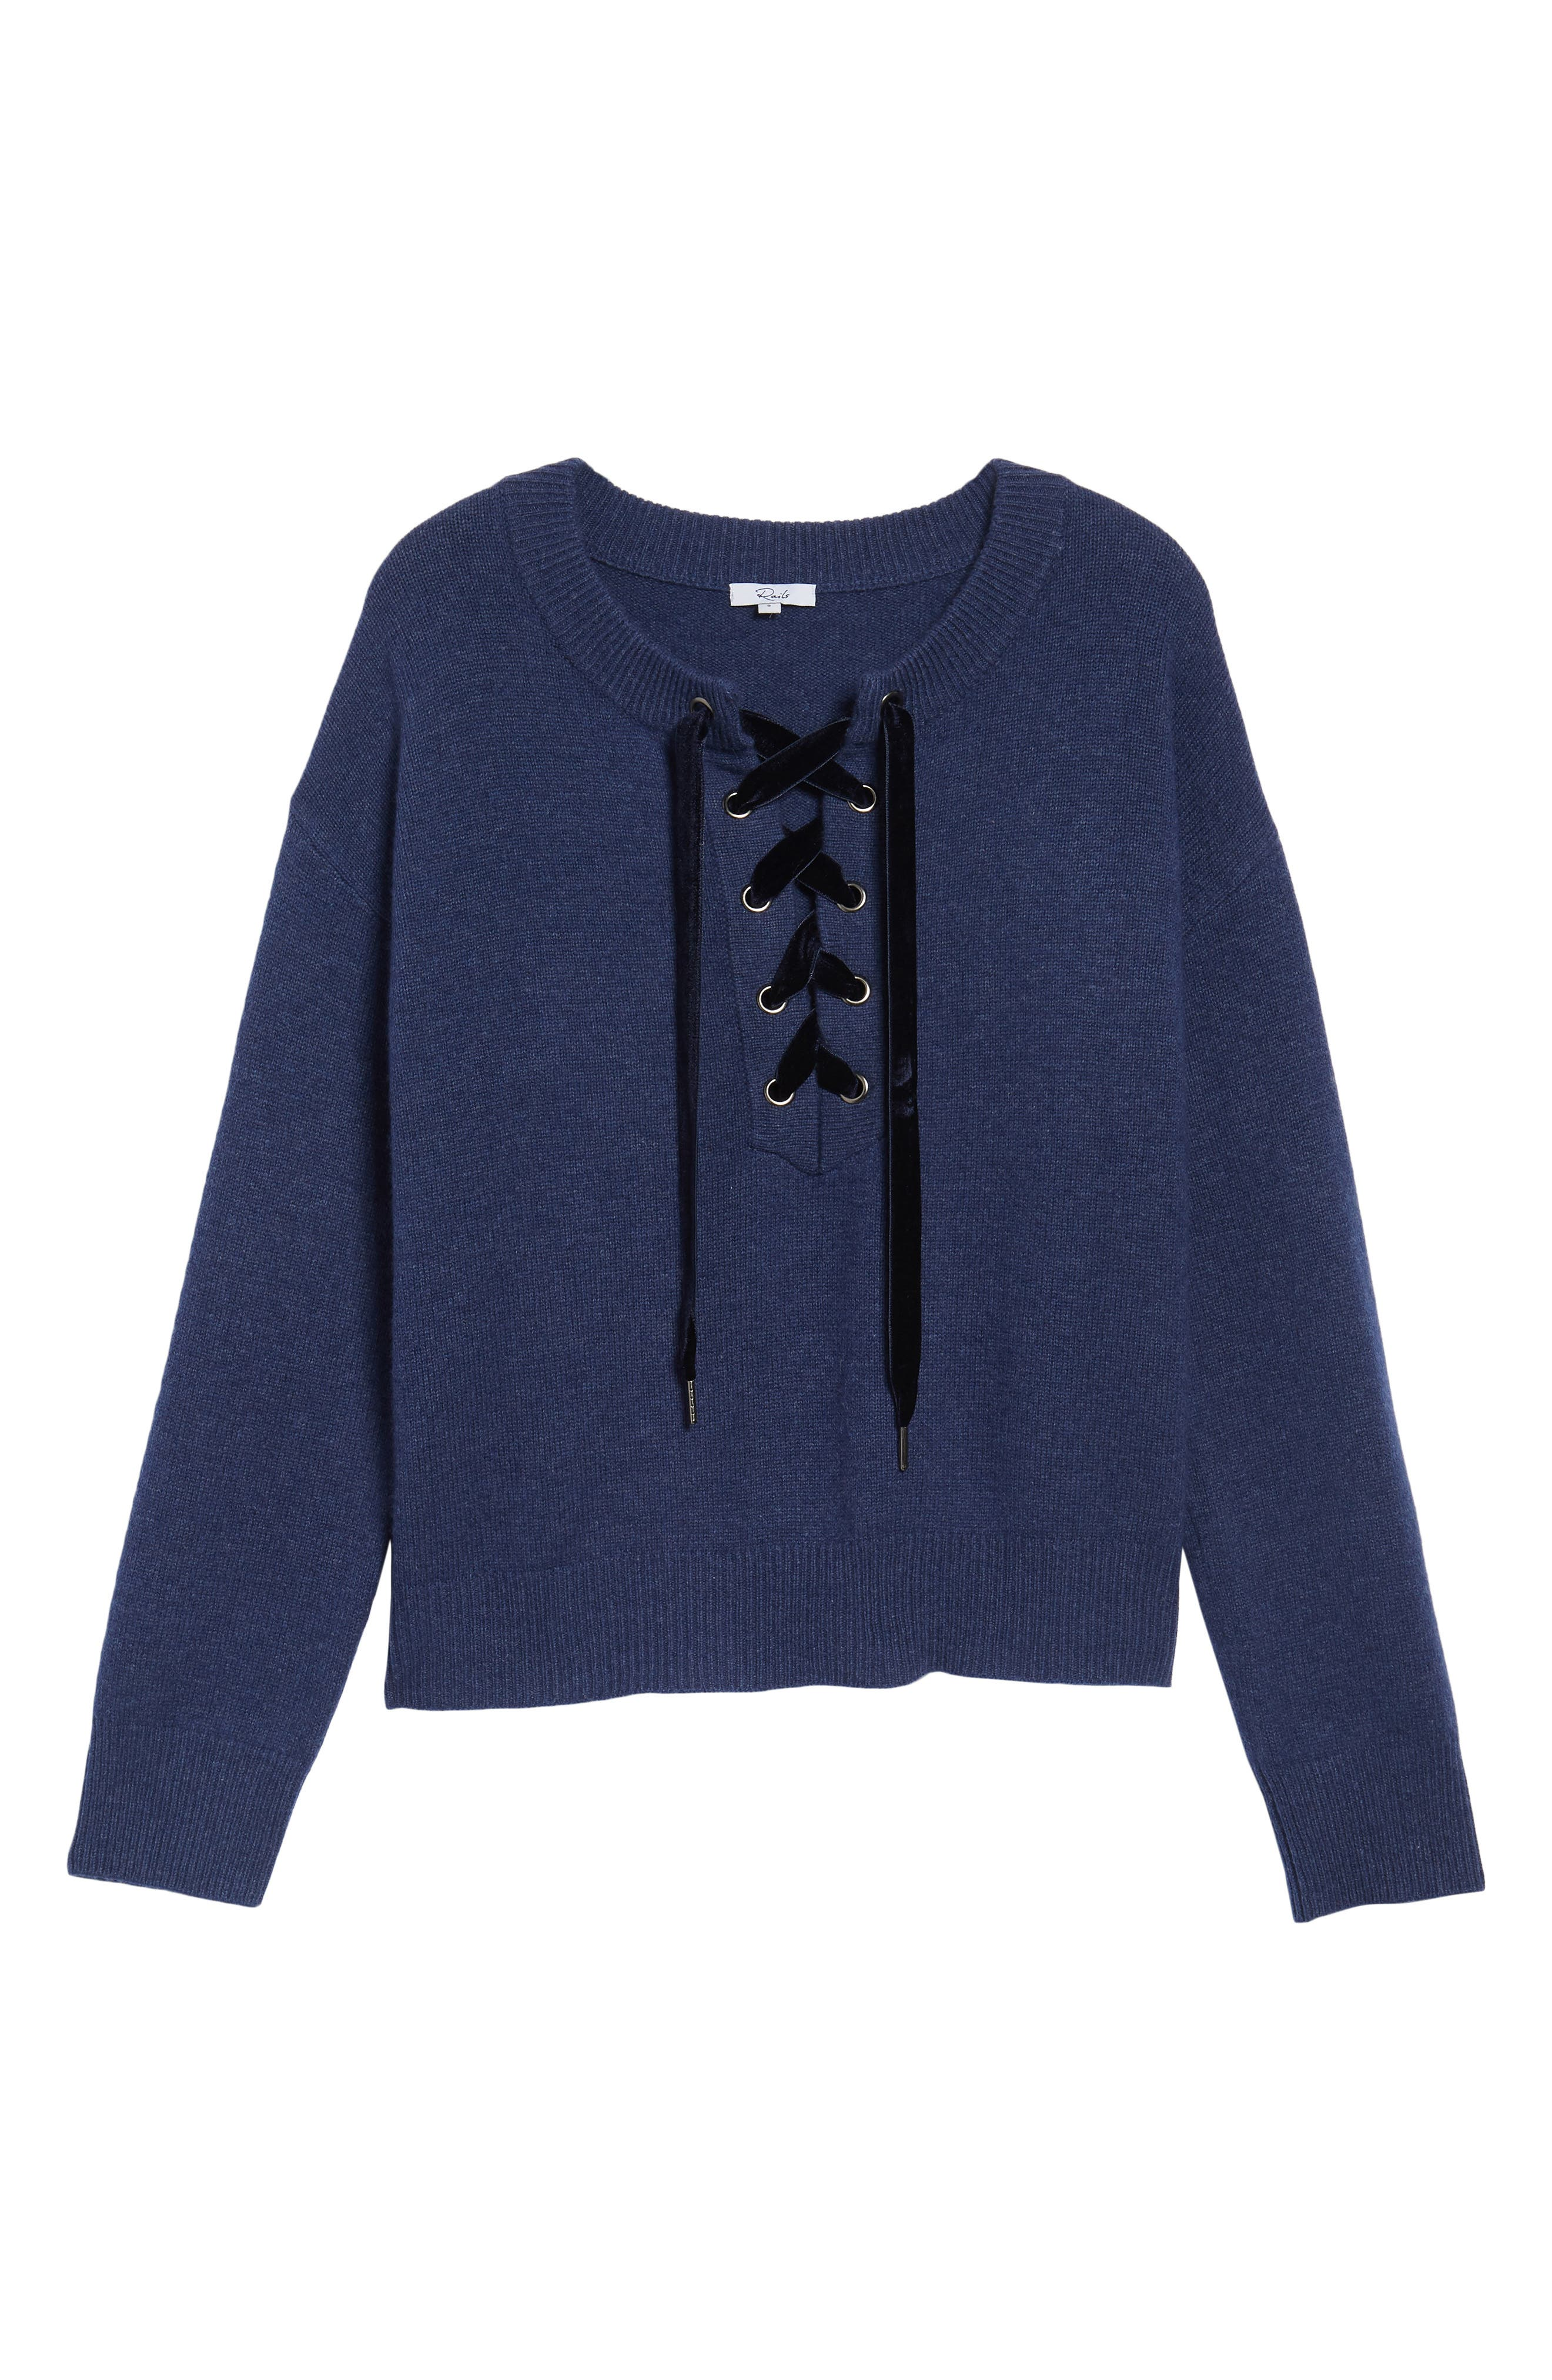 Olivia Lace-Up Sweater,                             Alternate thumbnail 19, color,